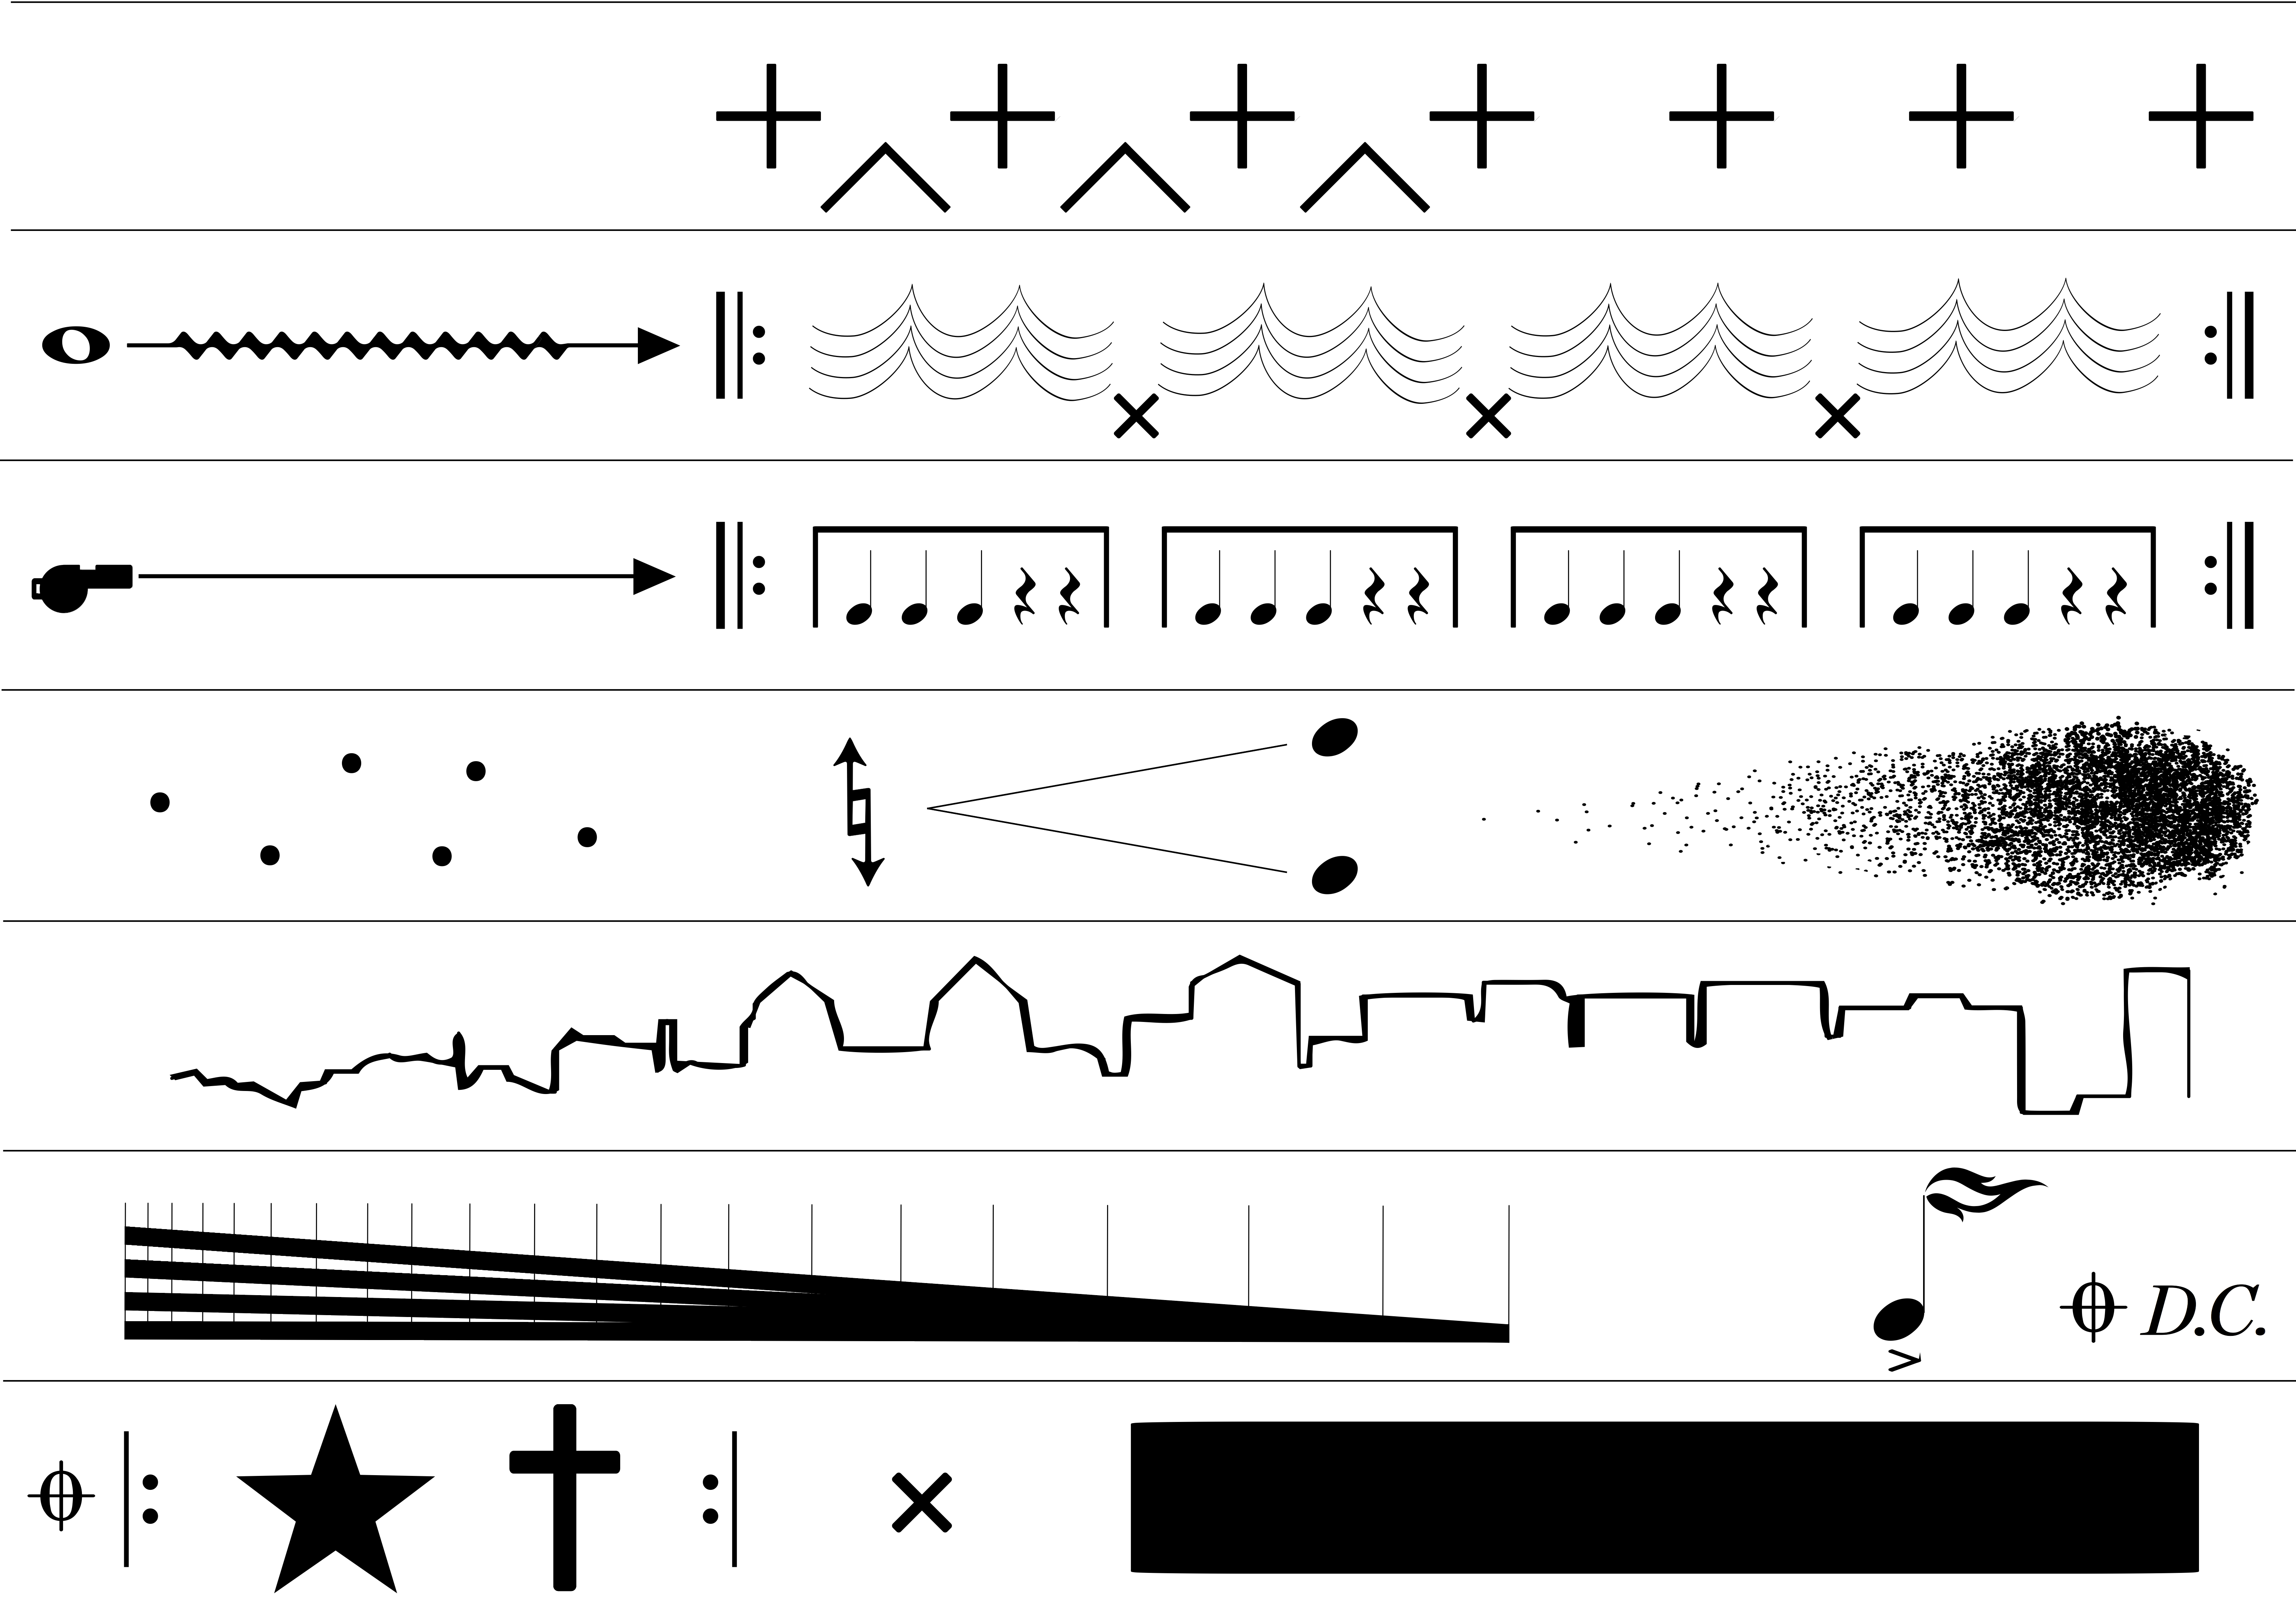 Raven Chacon's American Ledger (No. 1) is a score of seven lines made up of musical notation, symbols and shapes